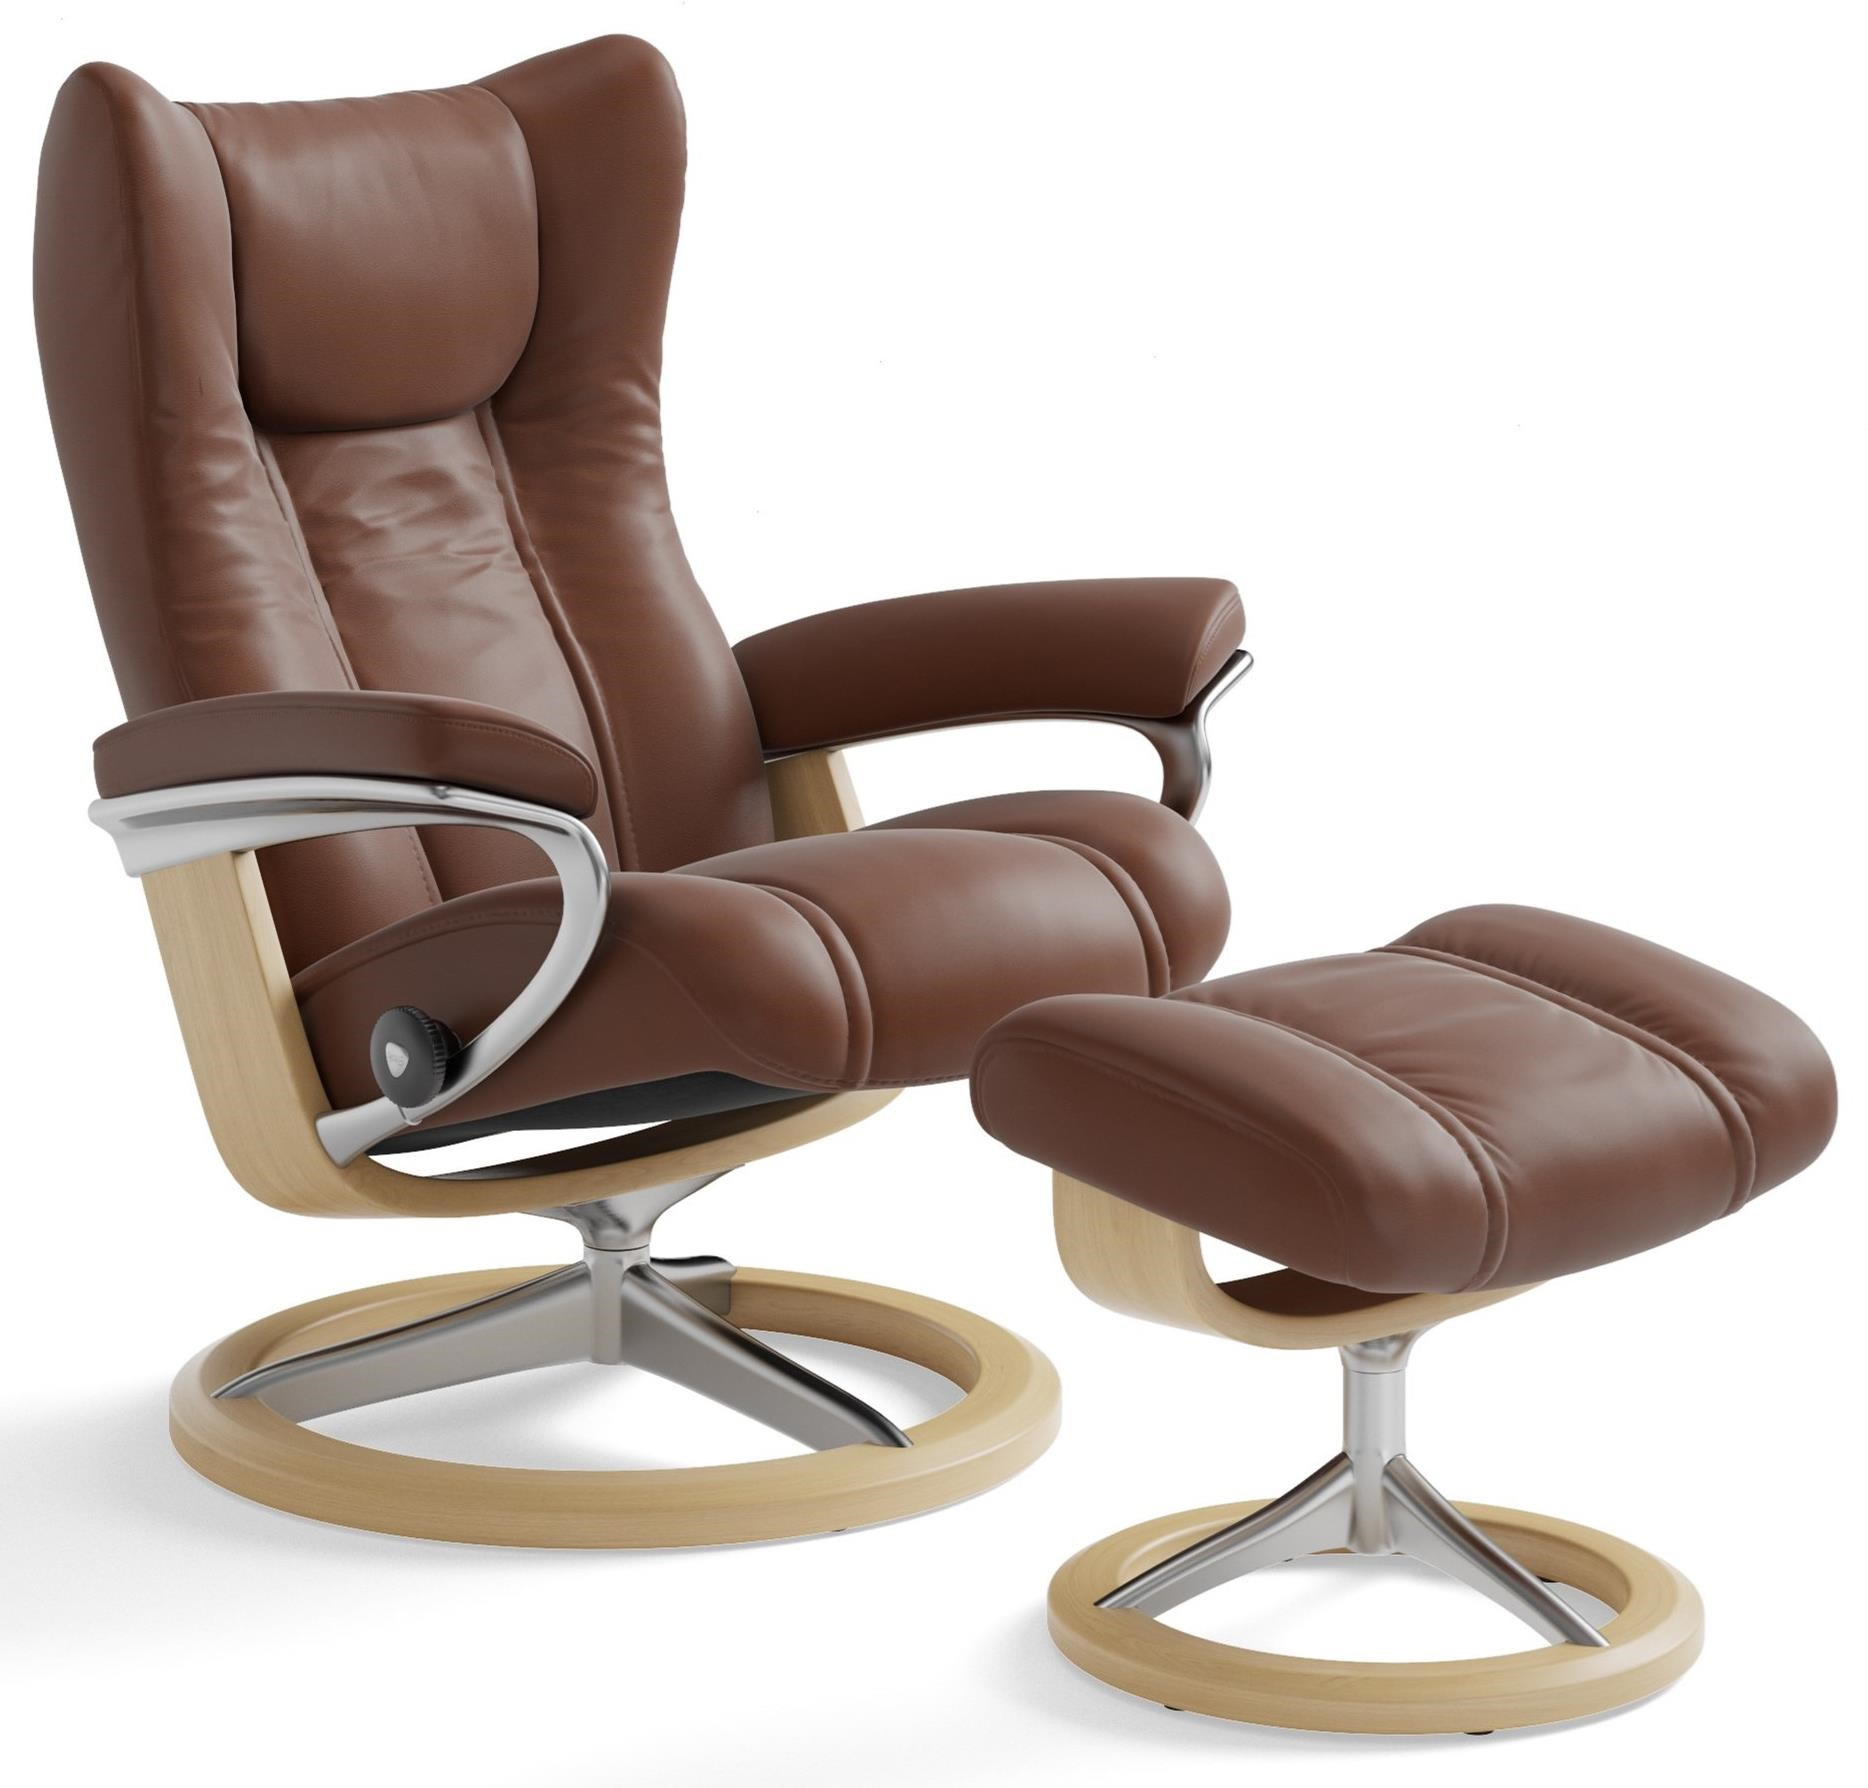 stressless chair sizes best office back support cushion wing medium reclining and ottoman with